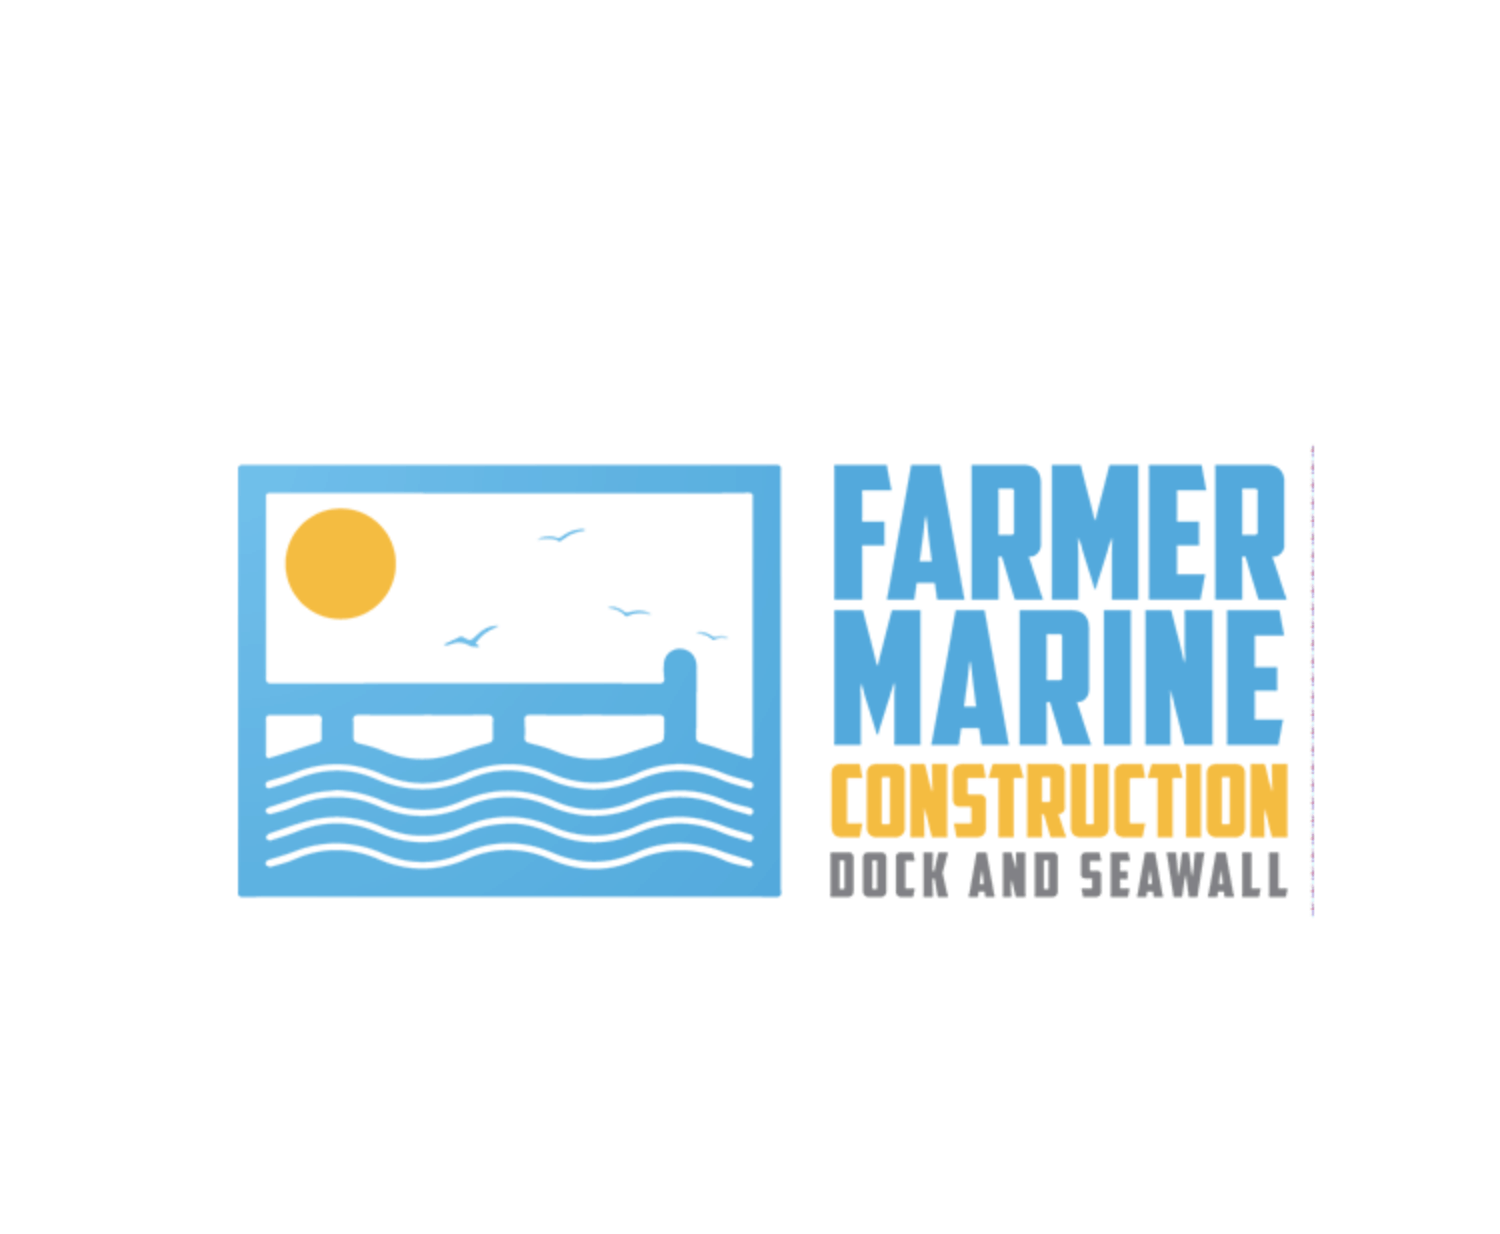 Logo by Tailored Logo - Farmer Marine Construction